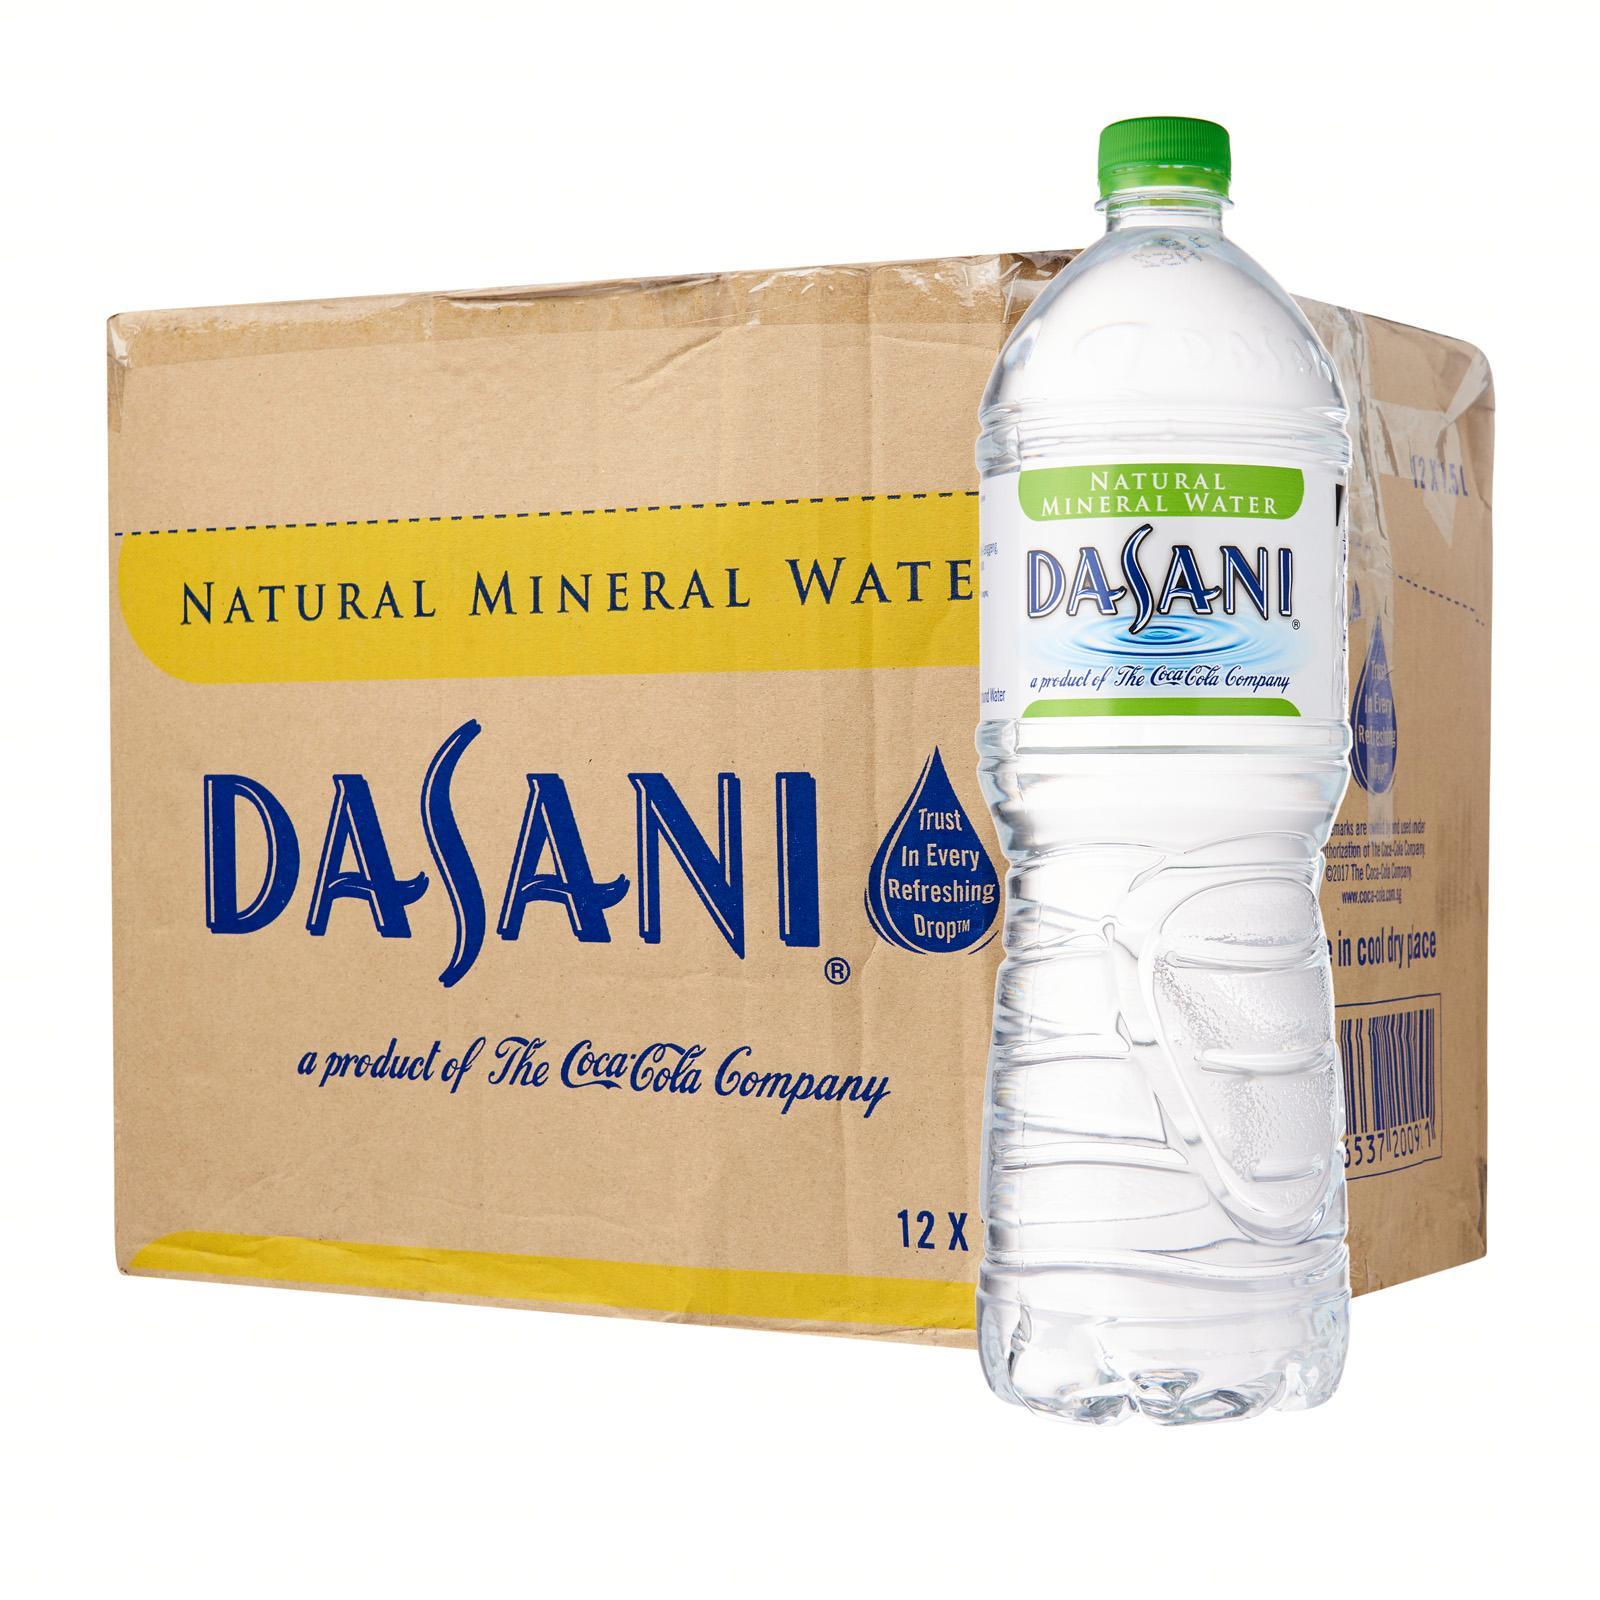 Image result for dasani natural mineral water